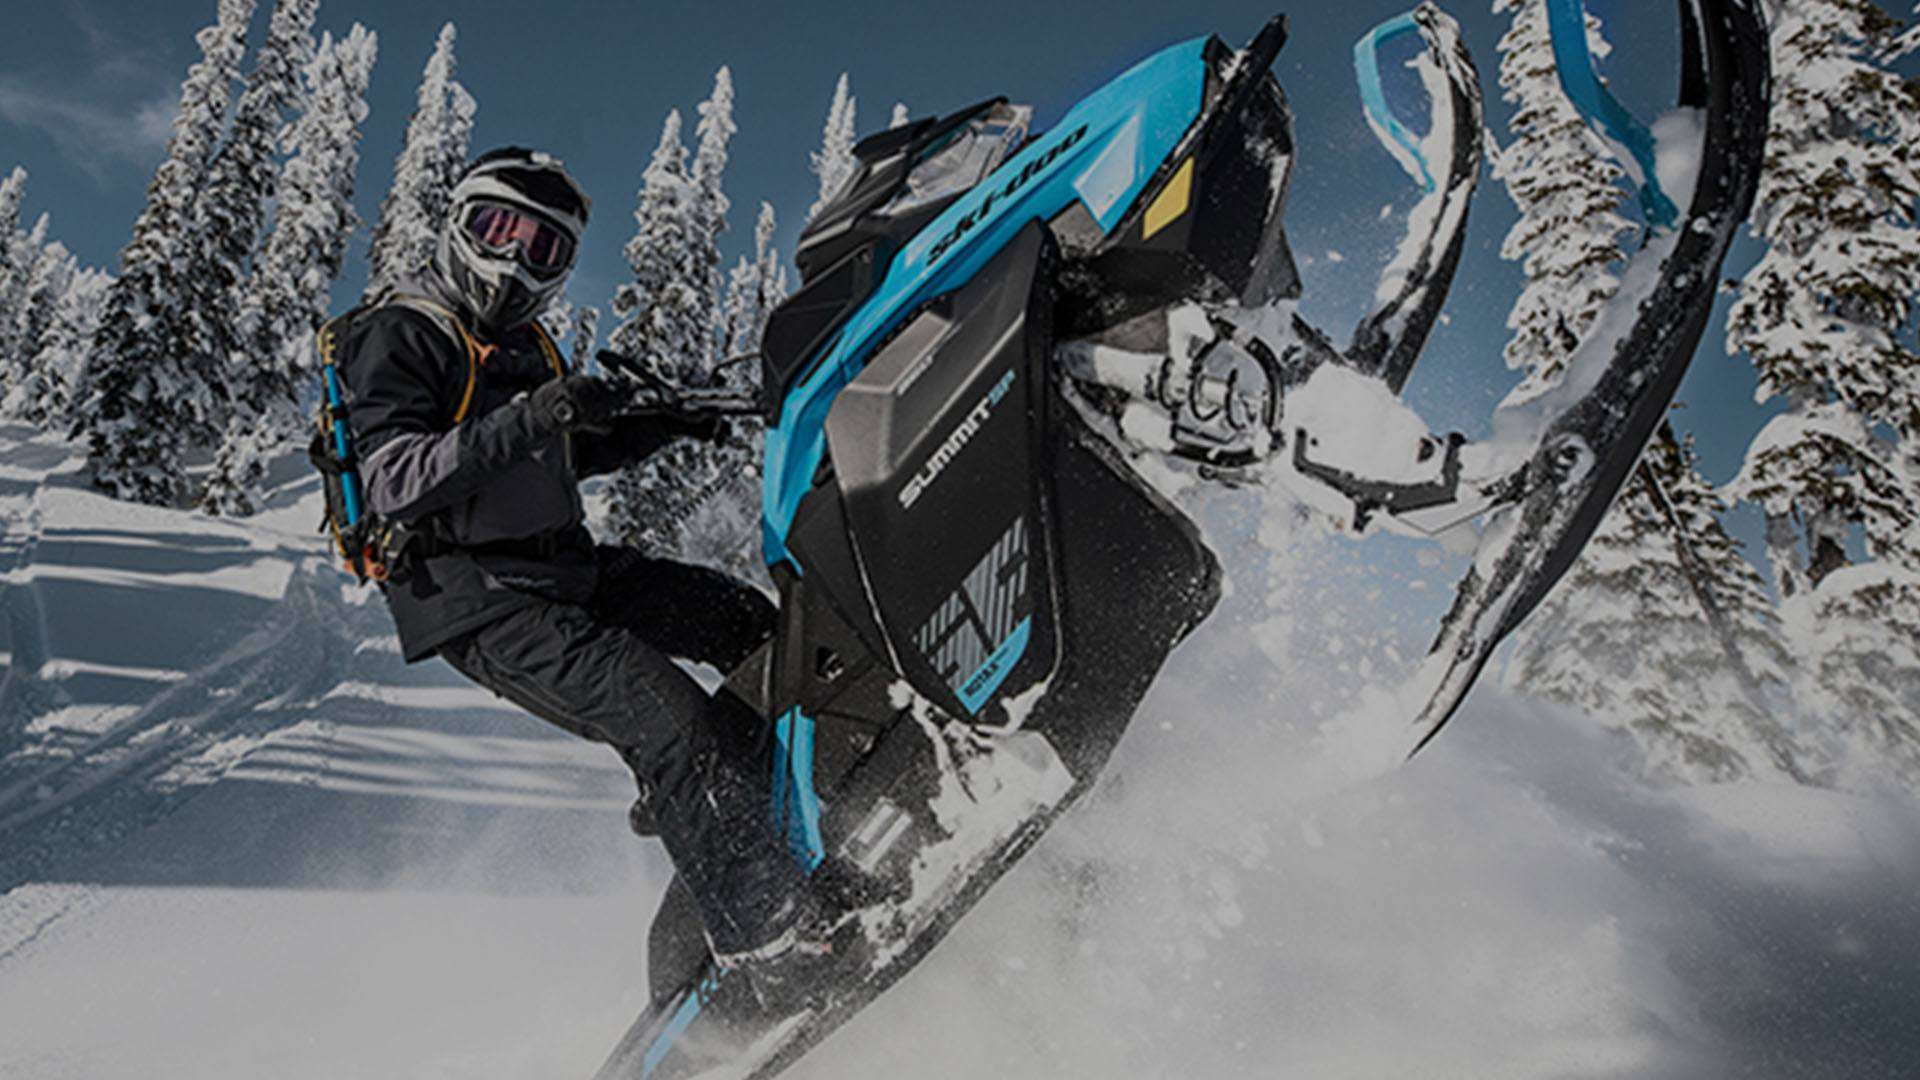 2019 Ski-Doo Snowmobiles For Sale at Benny's Power in Chester, VT